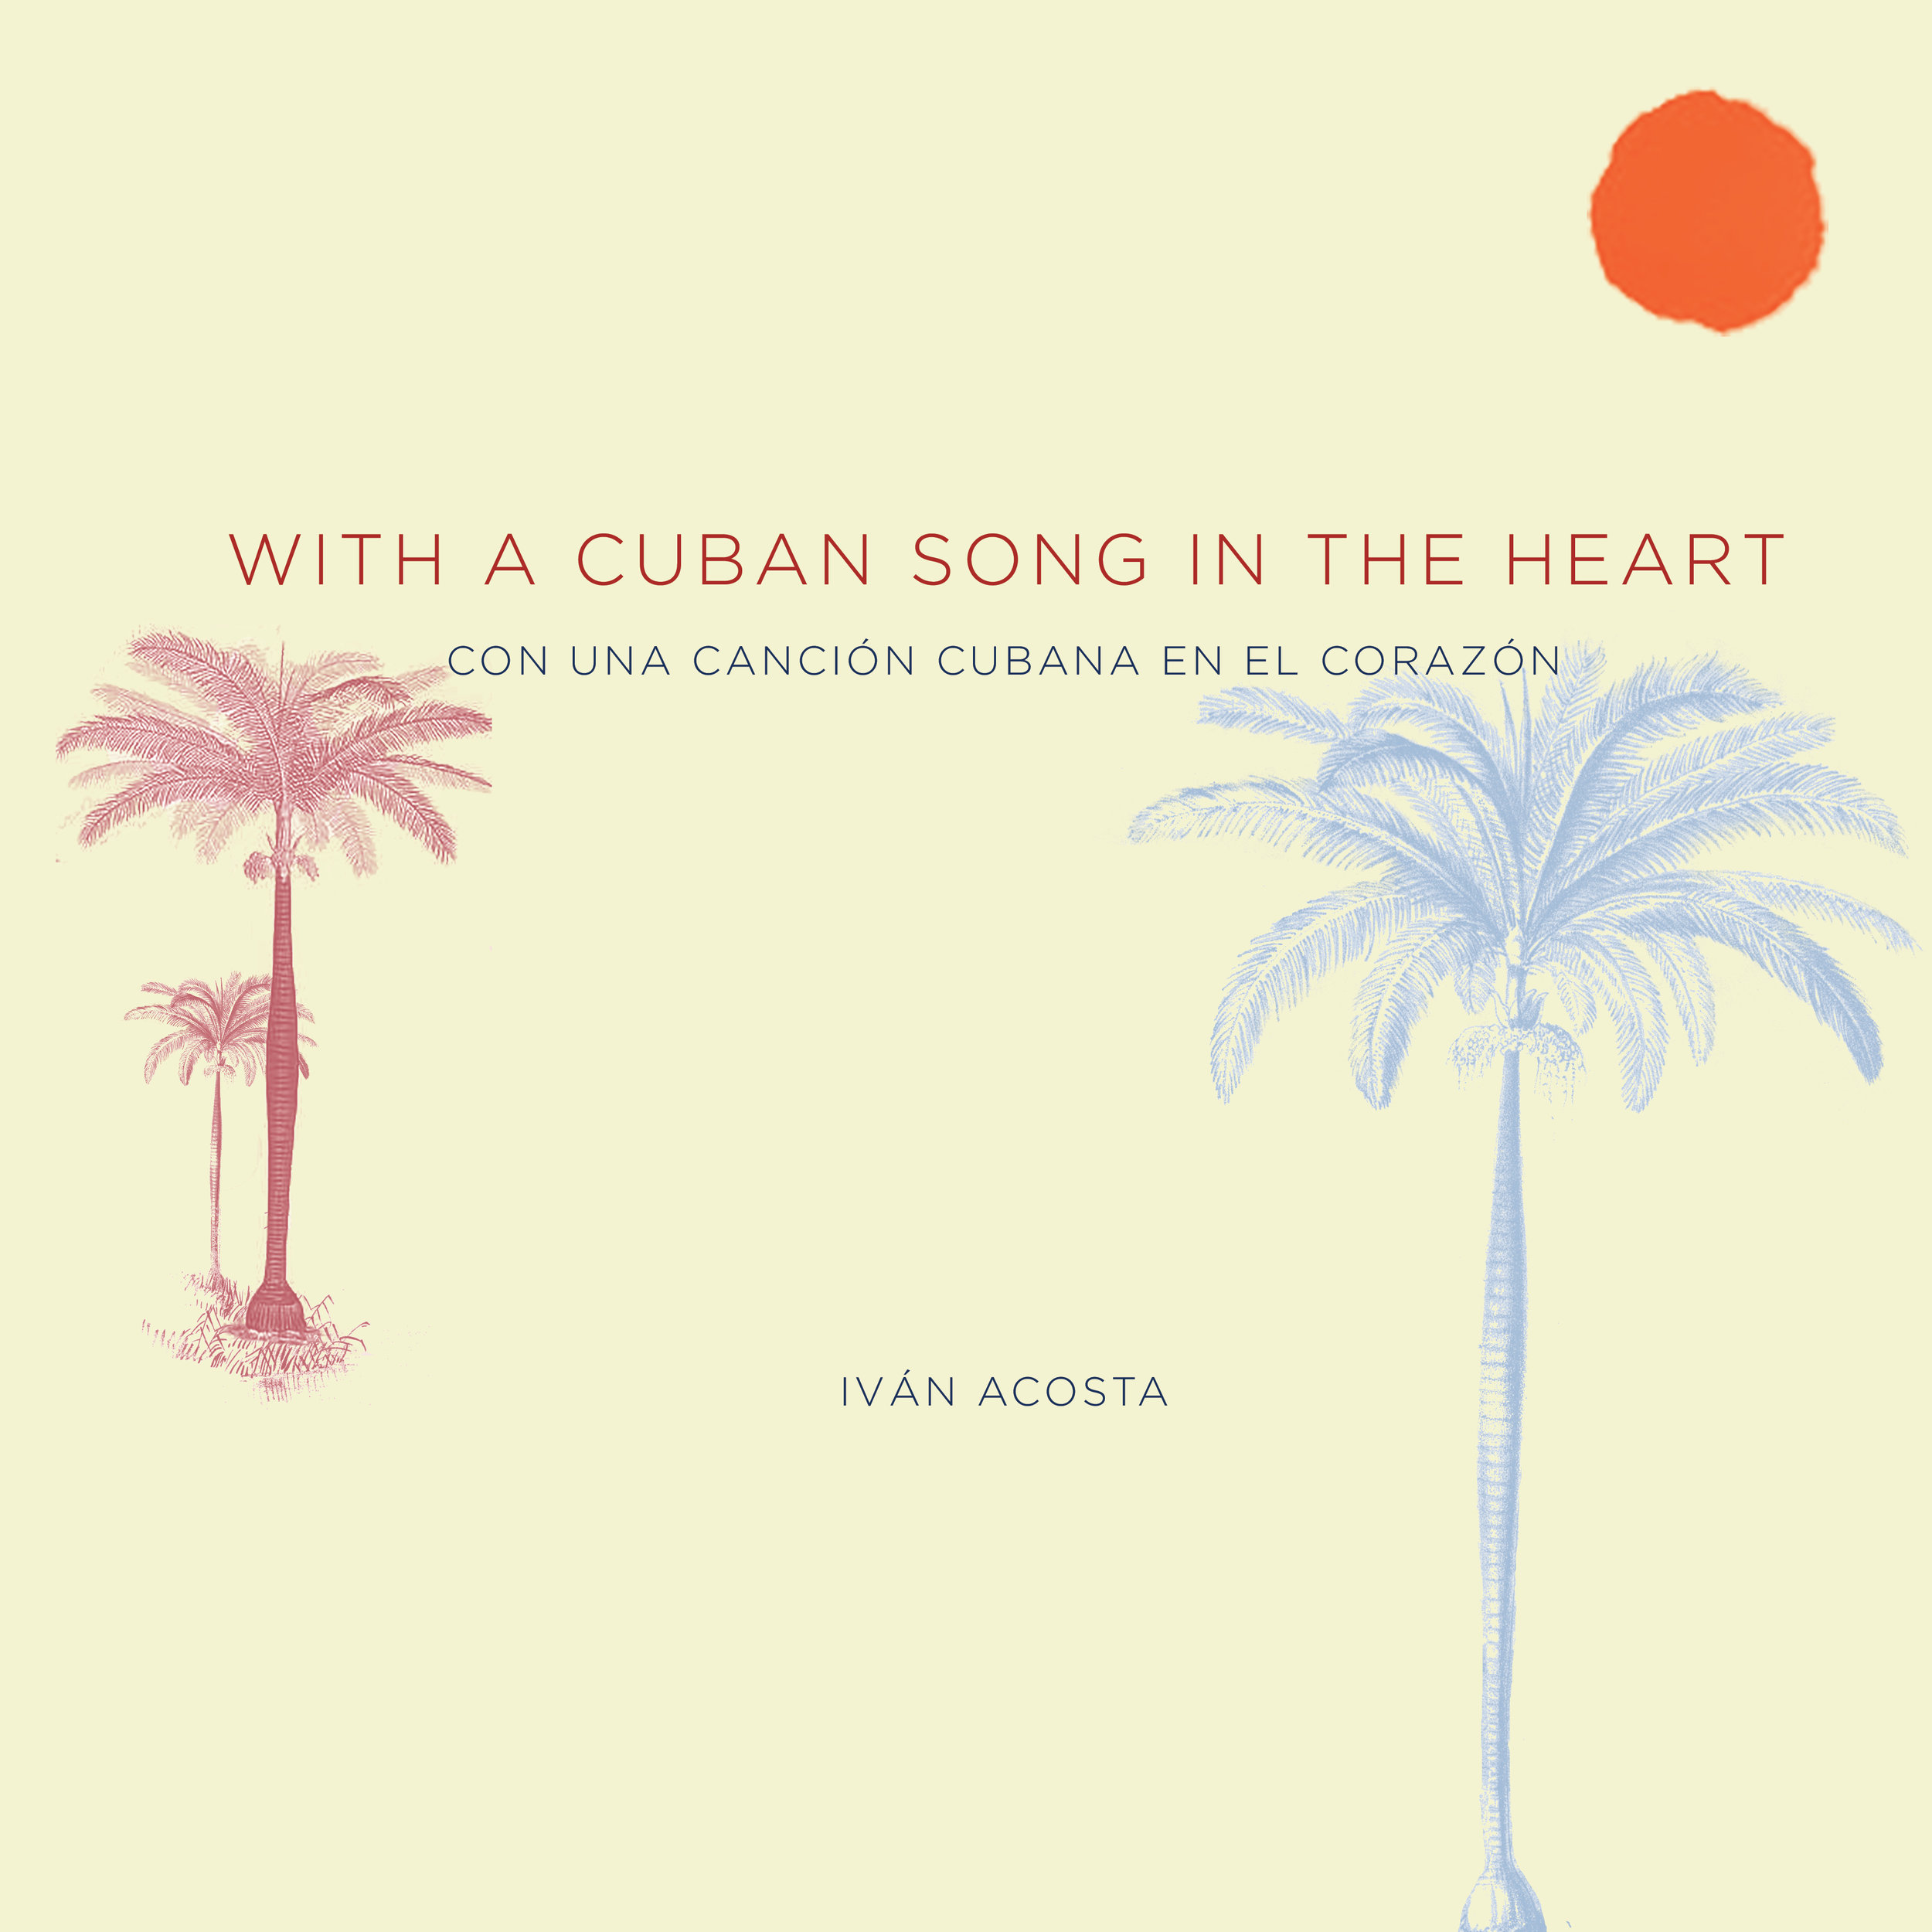 WITH A CUBAN SONG IN THE HEART | CON UNA CANCIÓN CUBANA EN EL CORAZÓN (Un-Gyve Press) by Iván Acosta, with an introduction by Marc Myers. ( PRNewsFoto/Un-Gyve Press )